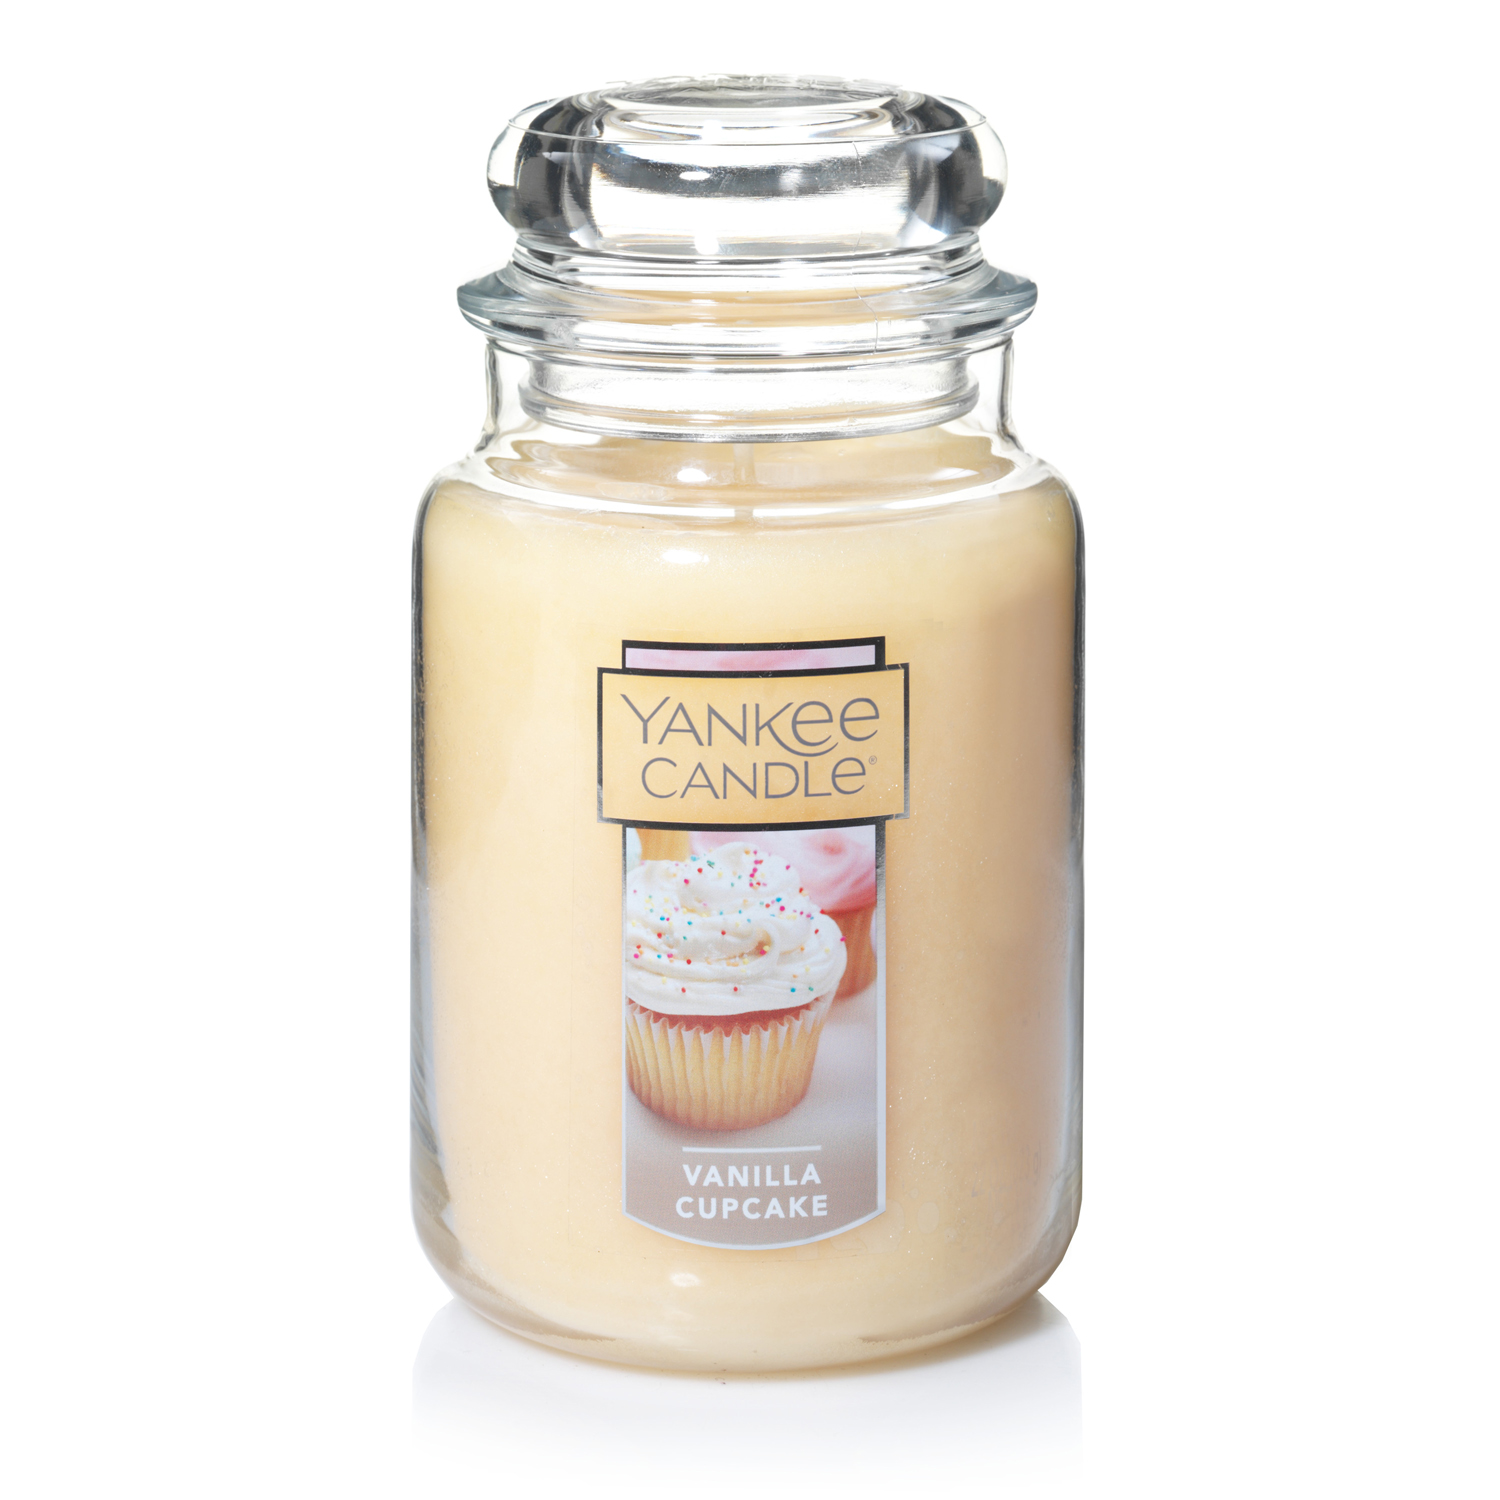 Yankee Candle Vanilla Cupcake - Large Classic Jar Candle